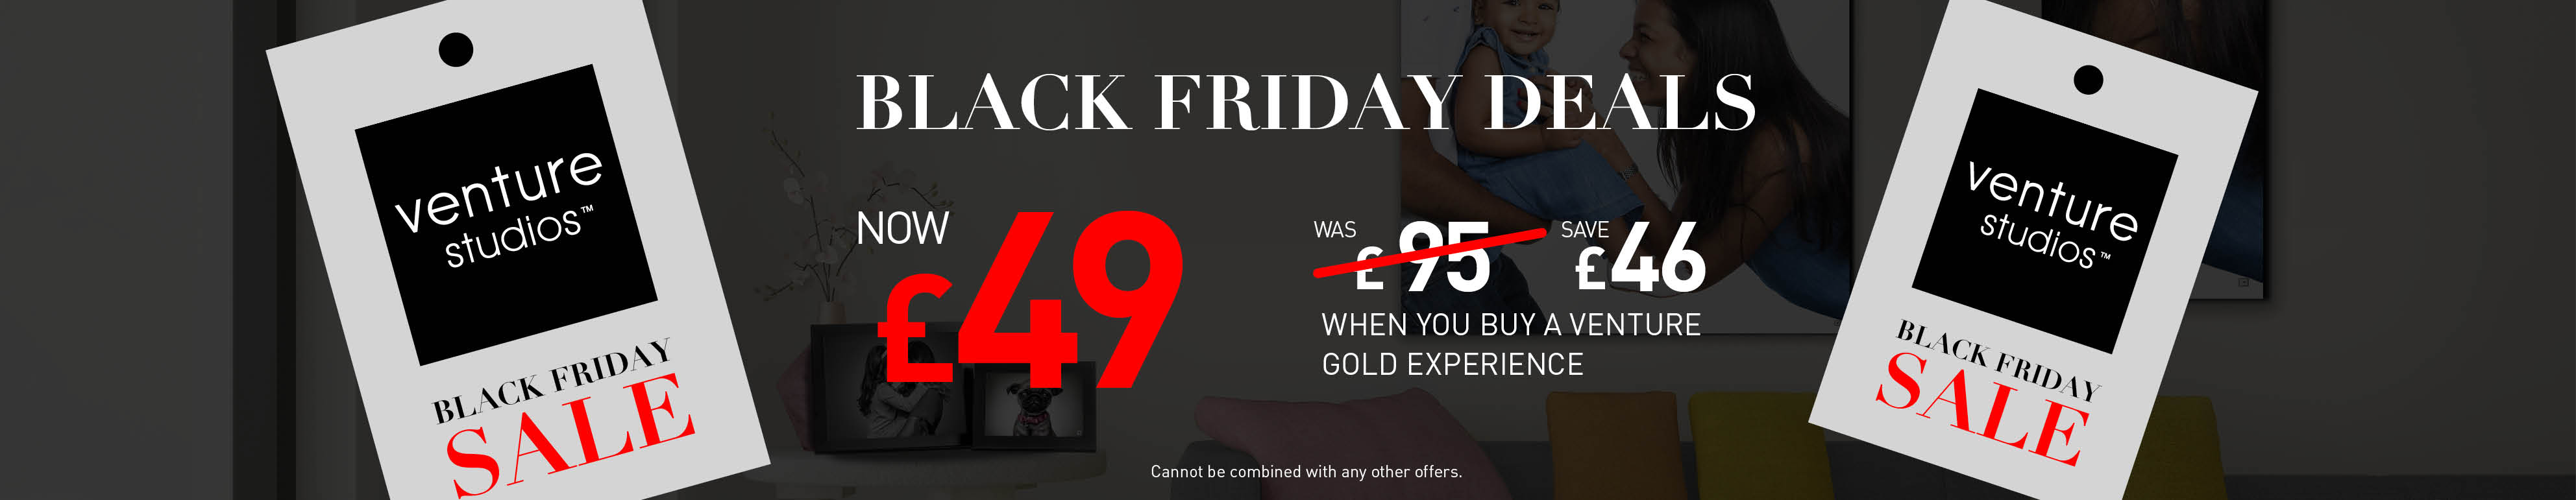 Black Friday Early access to gold offer